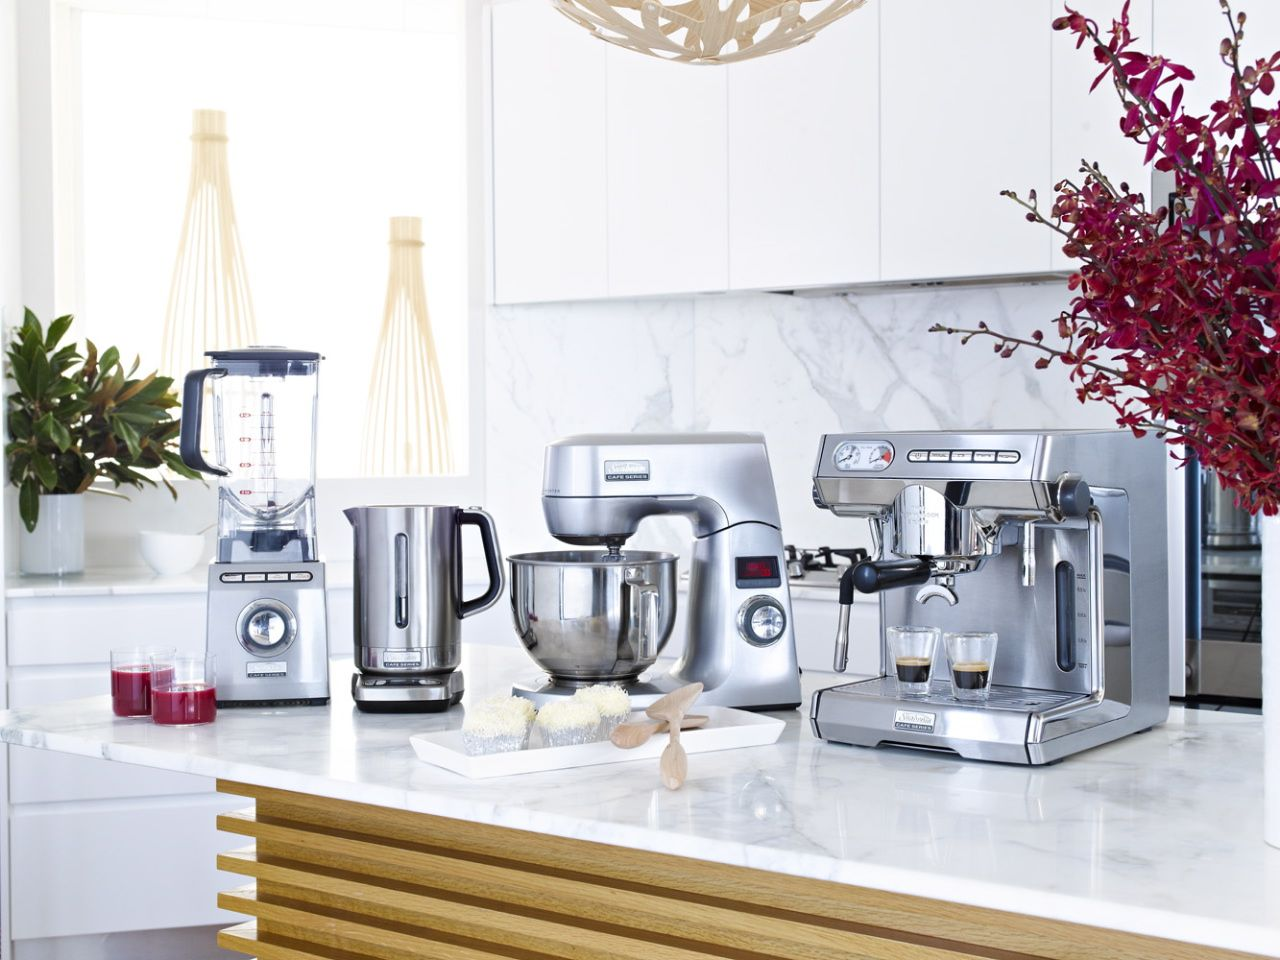 Renowned for excellent kitchen appliances, Sunbeam is available at ...